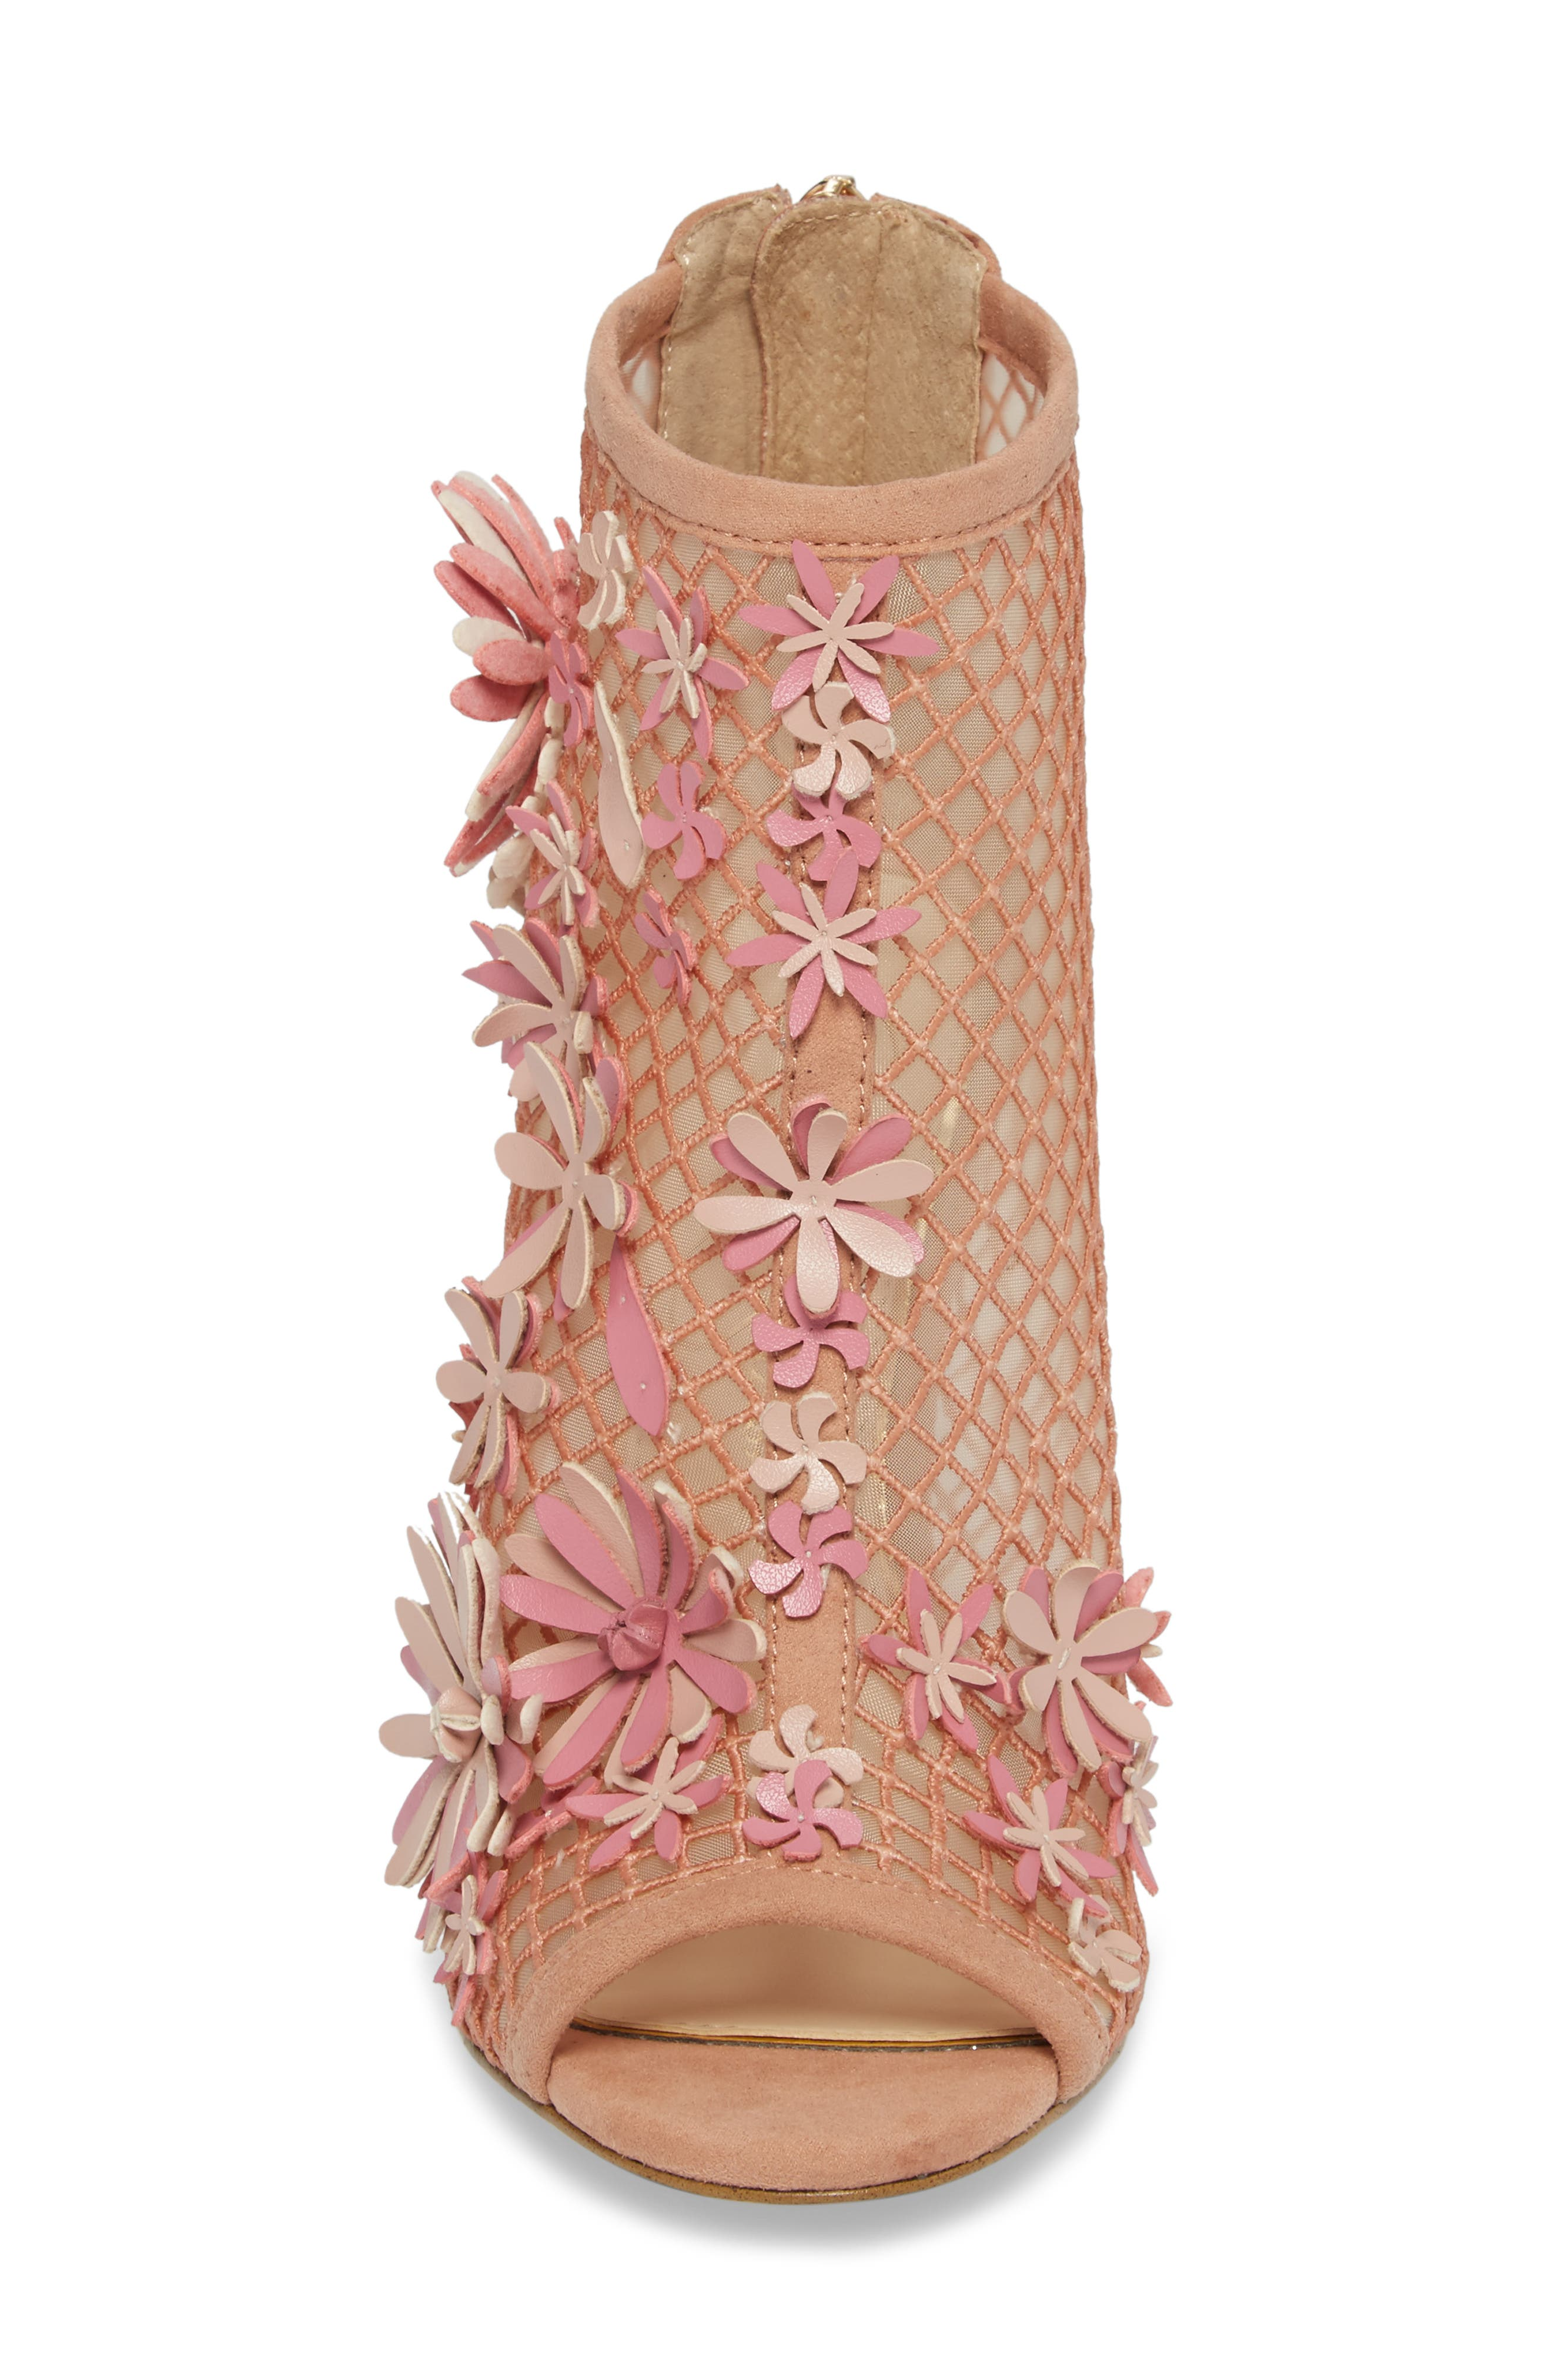 Jayko Flower Mesh Bootie,                             Alternate thumbnail 4, color,                             Nude Blush